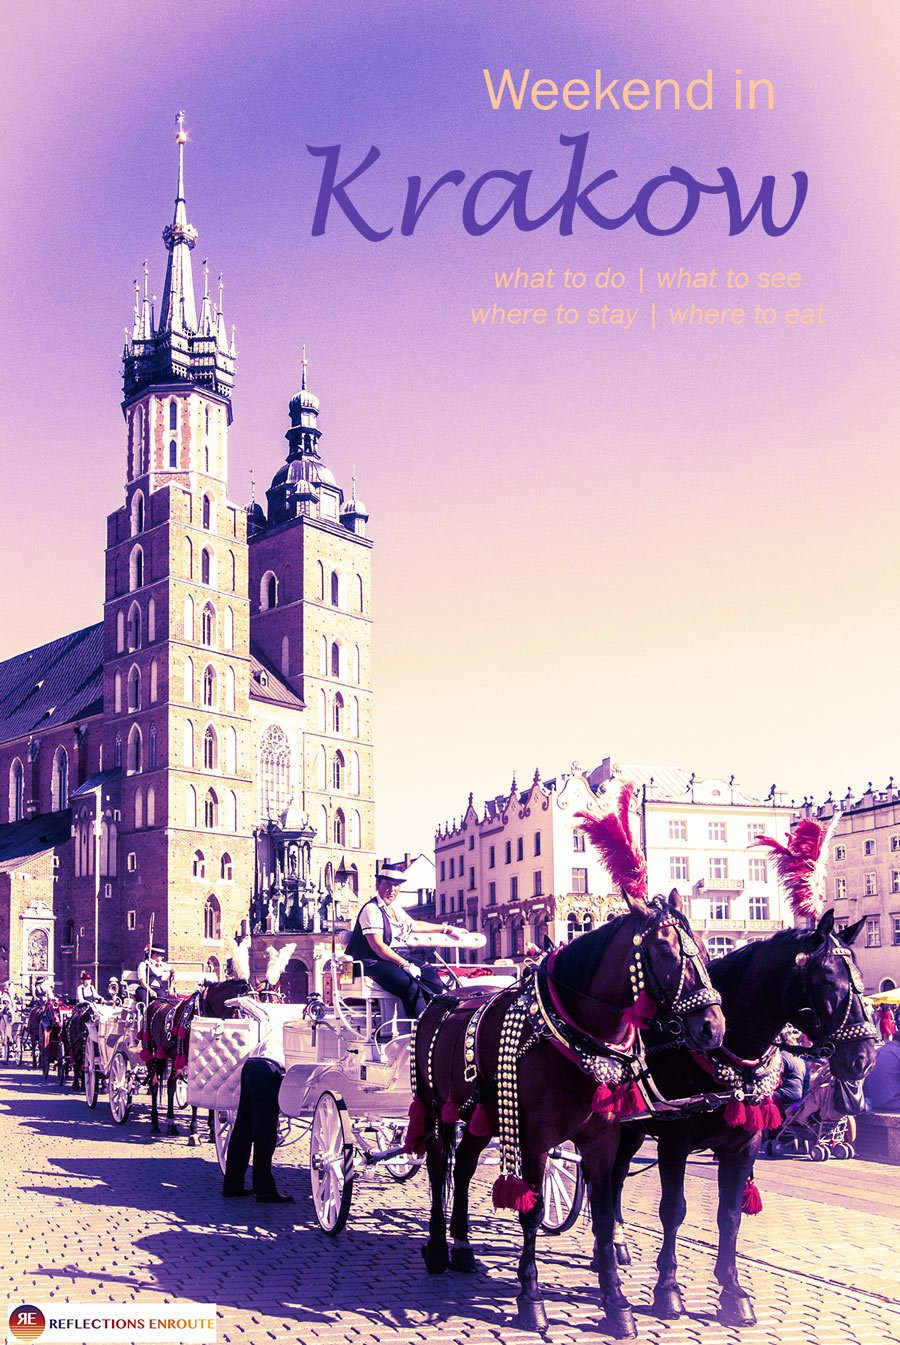 Looking for a European citybreak that will deliver romance, history, great food, and colorful souvenirs? Go to Krakow!